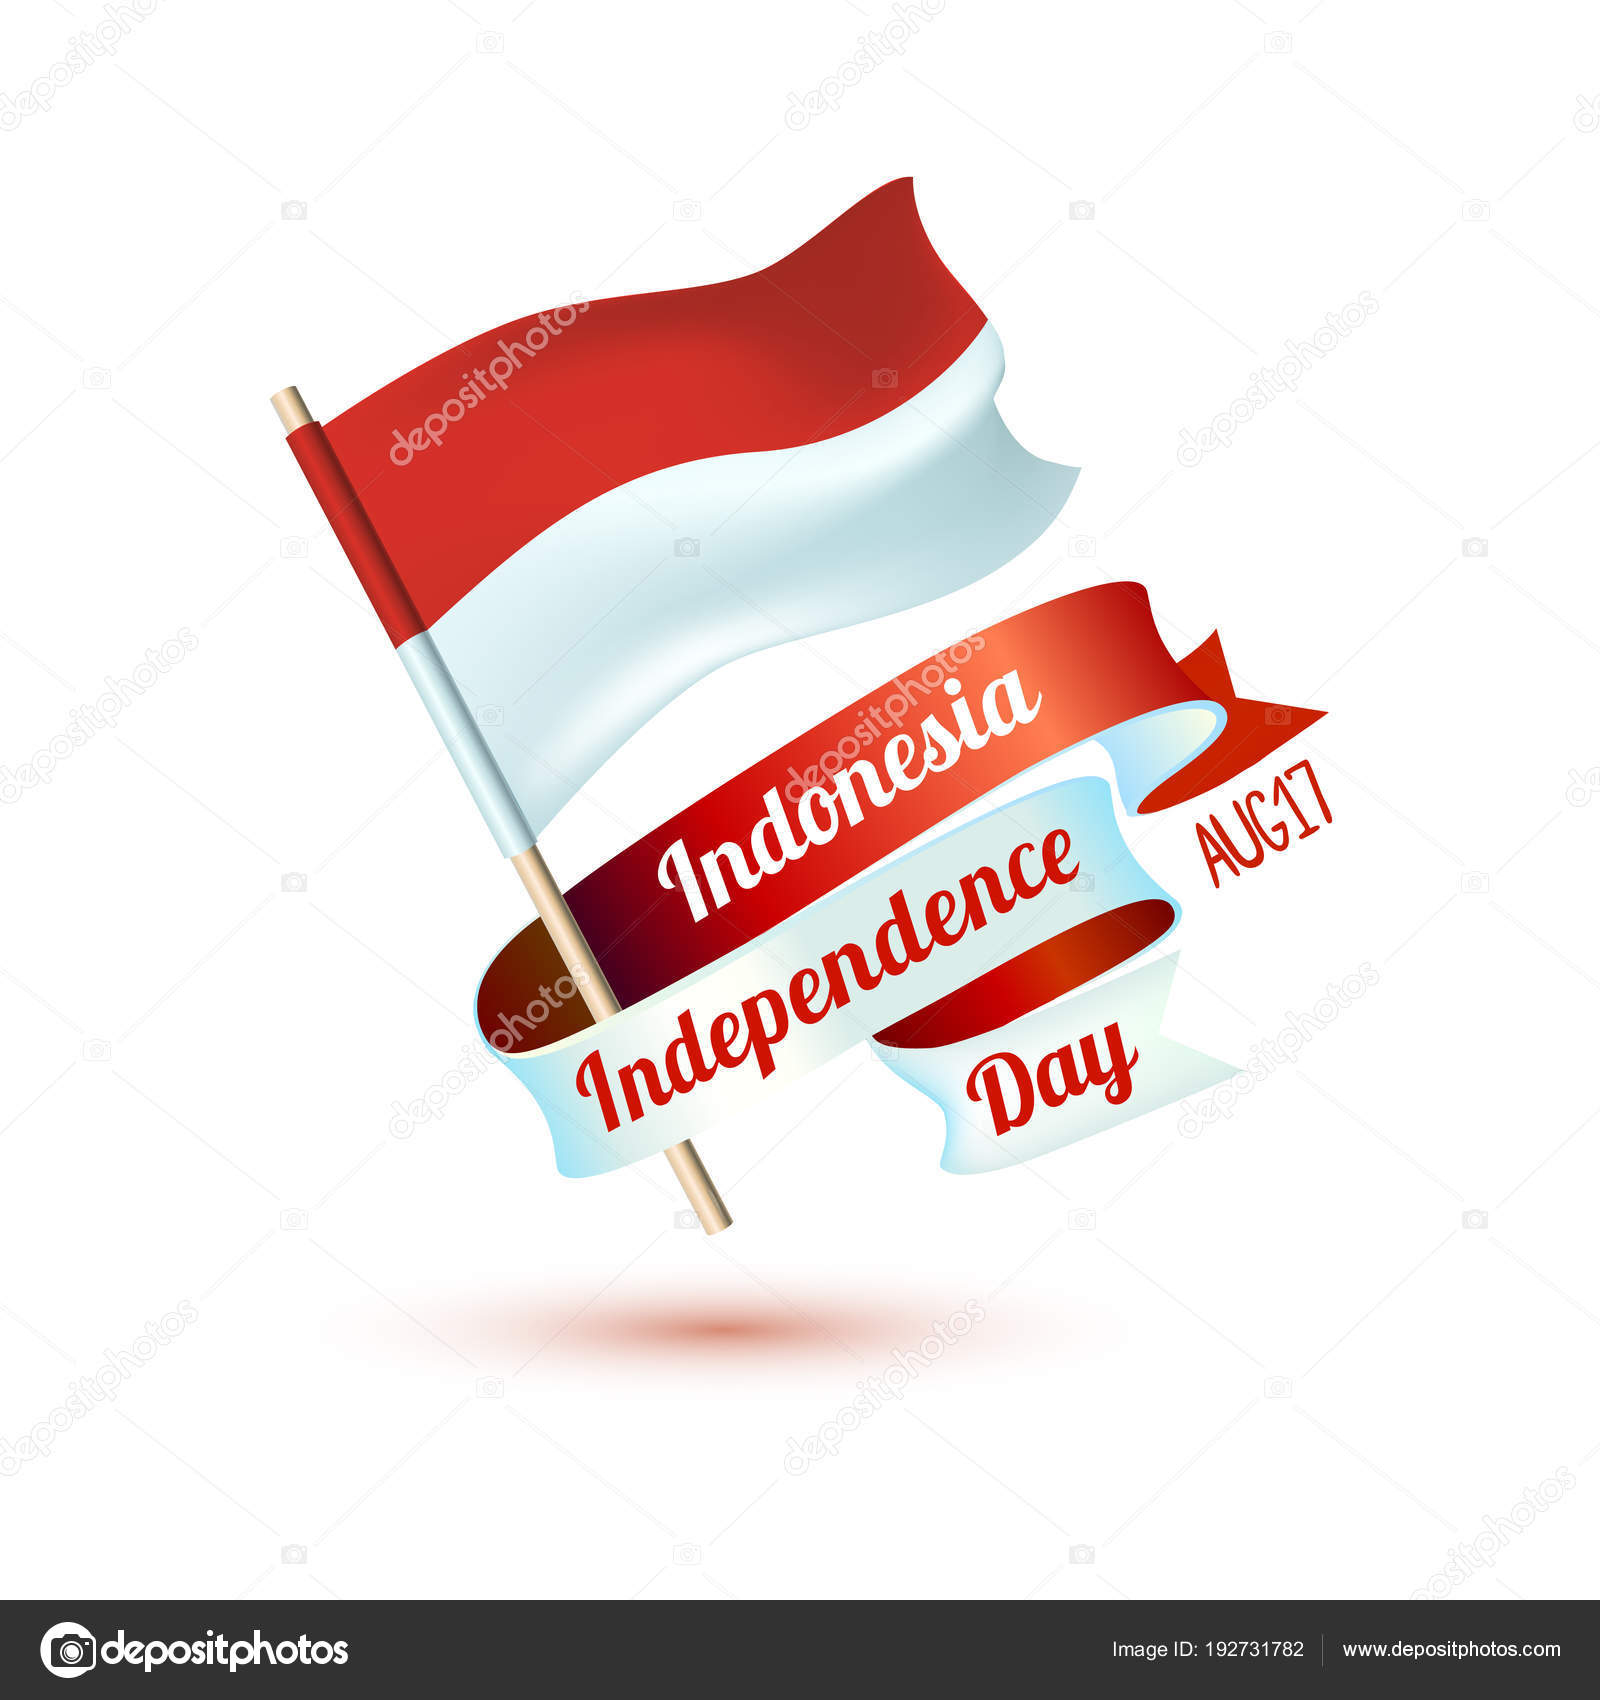 independence day card danal bjgmc tb org